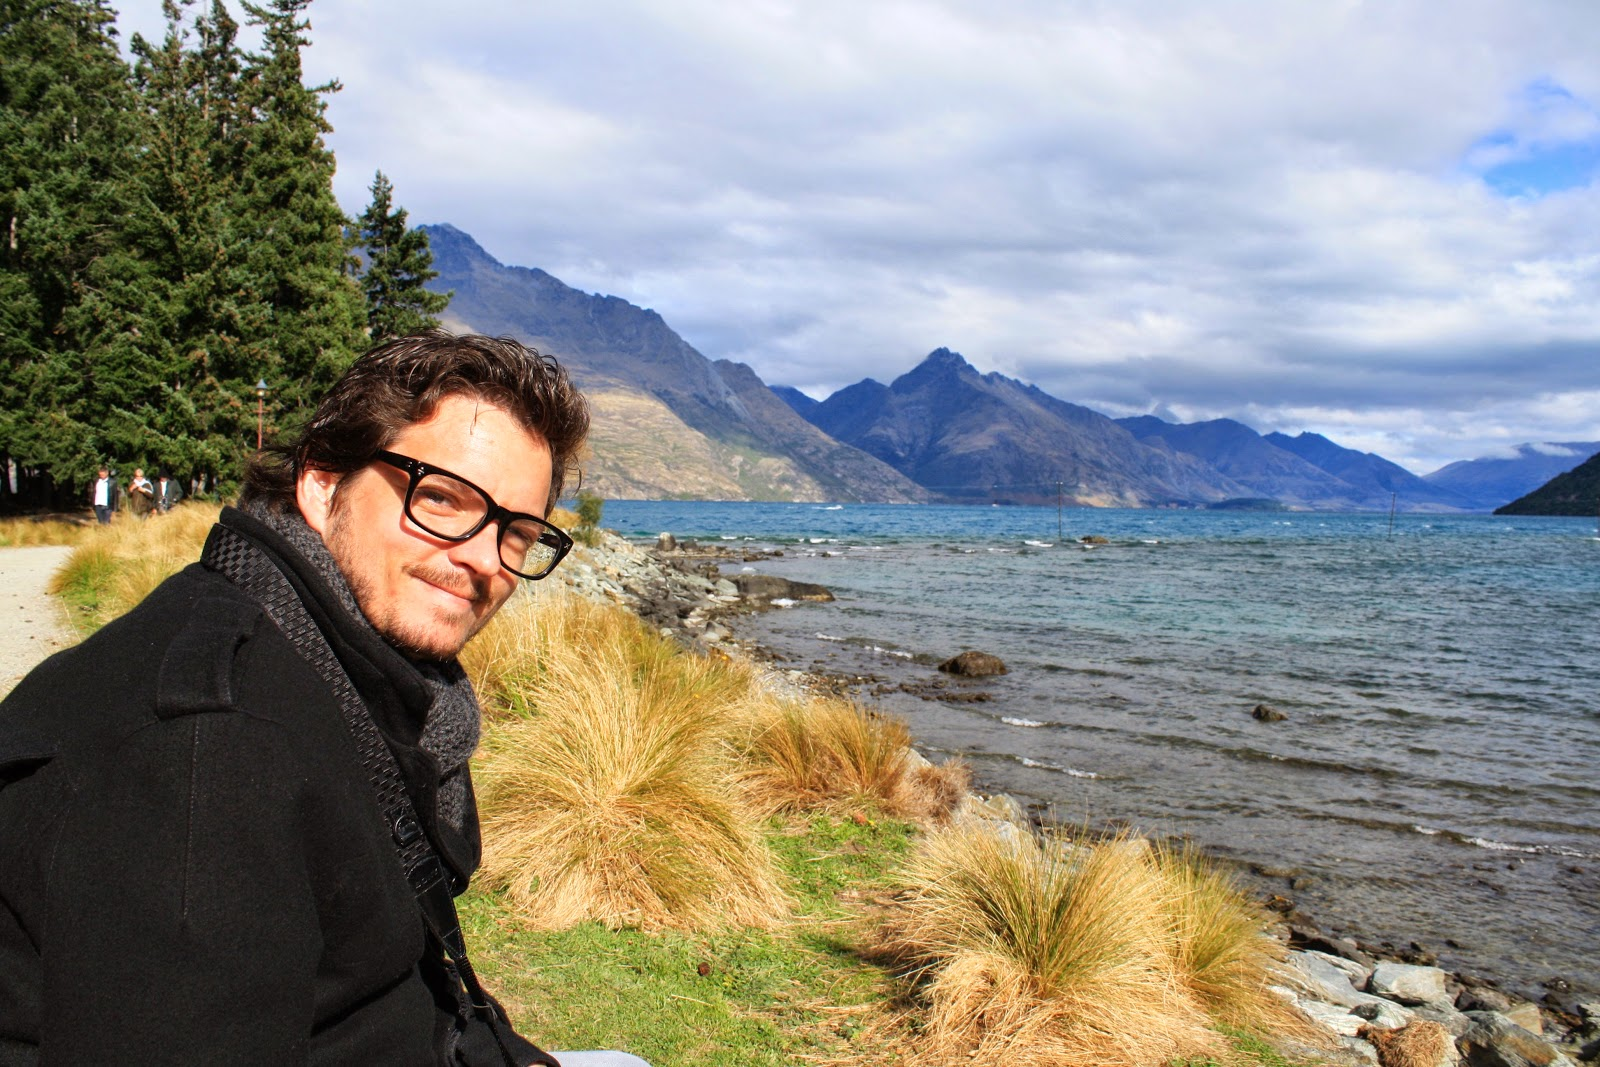 Jesse near Tussock grass at Lake Wakatipu, Queenstown.